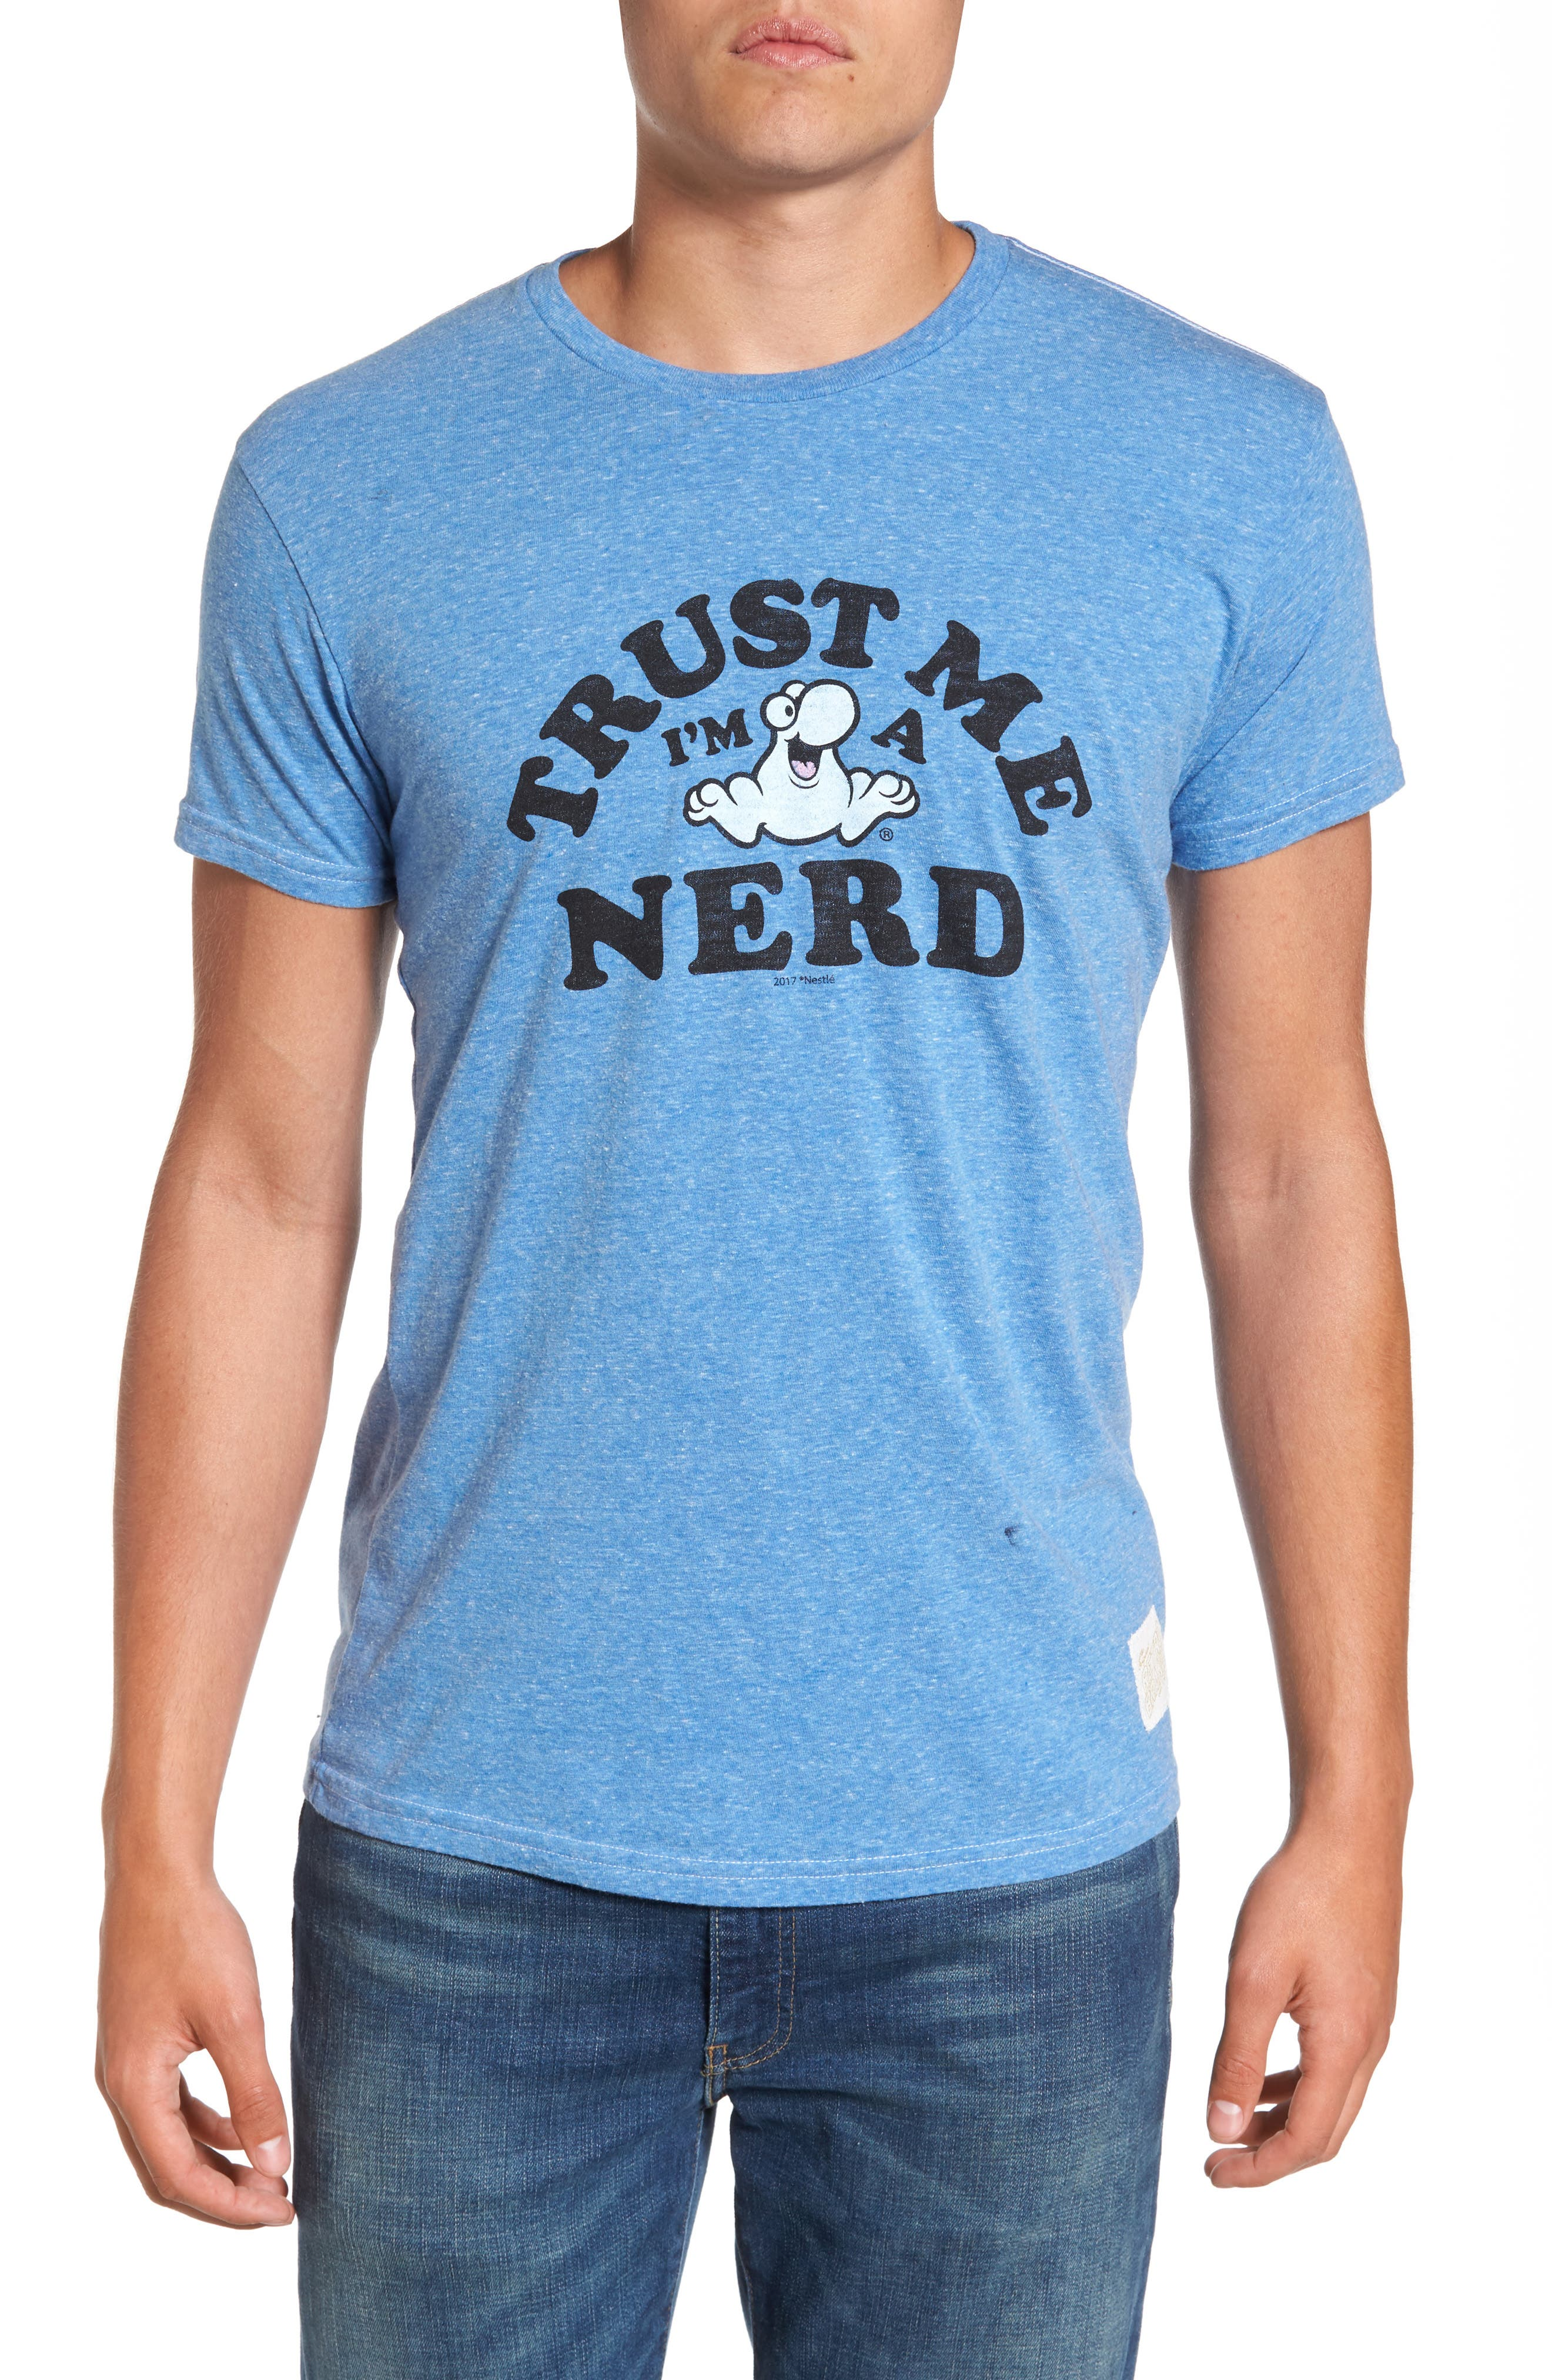 Retro Brand Nerds Graphic T-Shirt